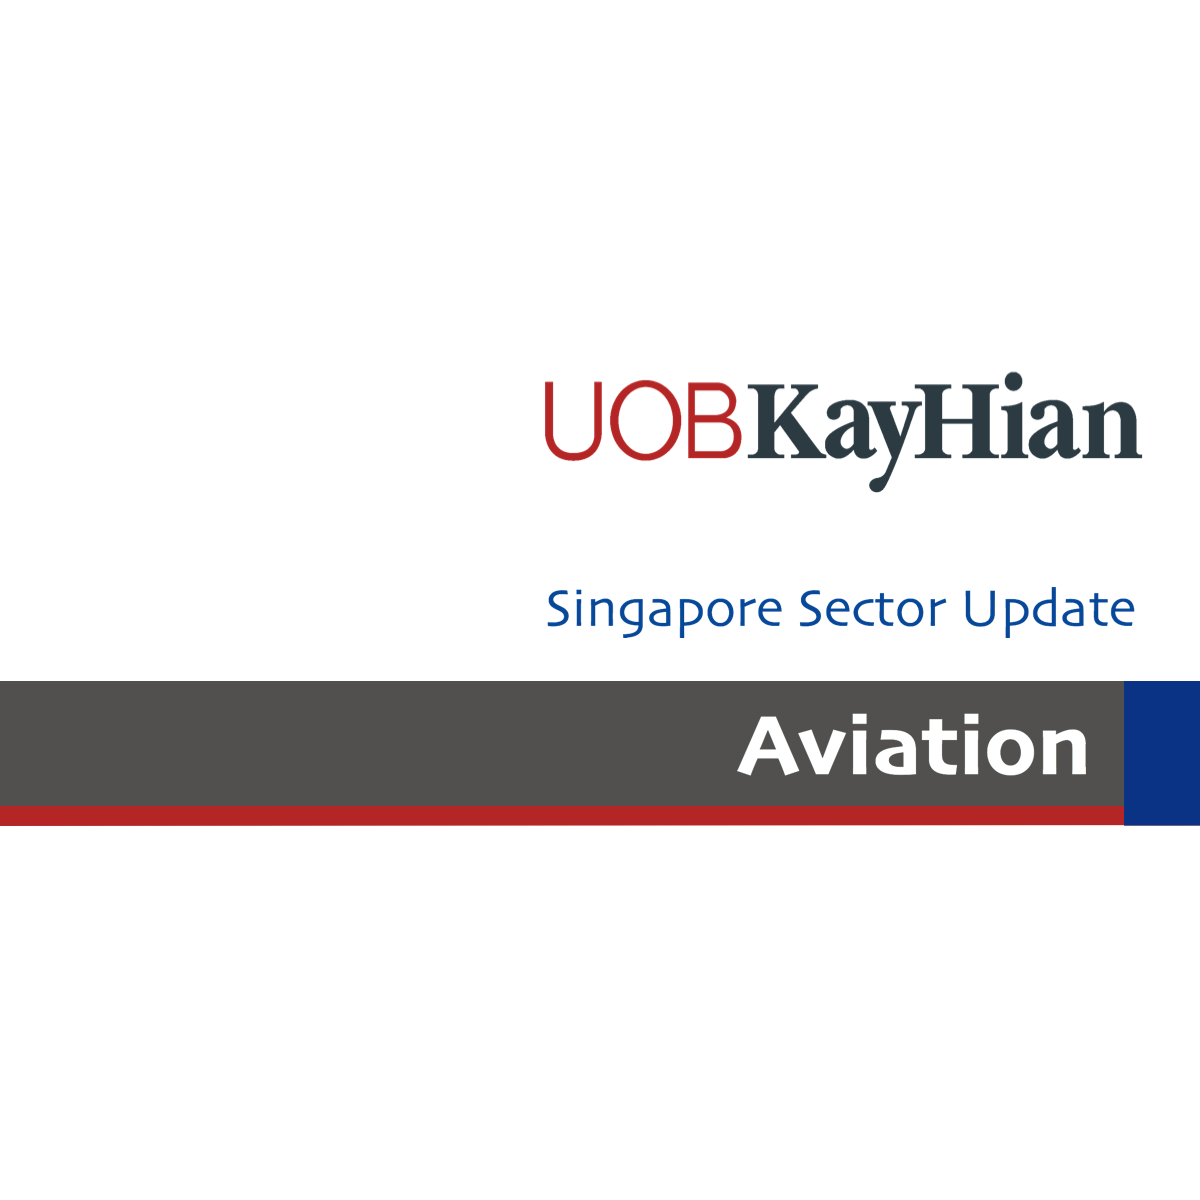 Aviation – Singapore - UOB Kay Hian 2018-06-11: Higher Costs For Passengers Departing From Changi Could Reduce Profitability For Airlines